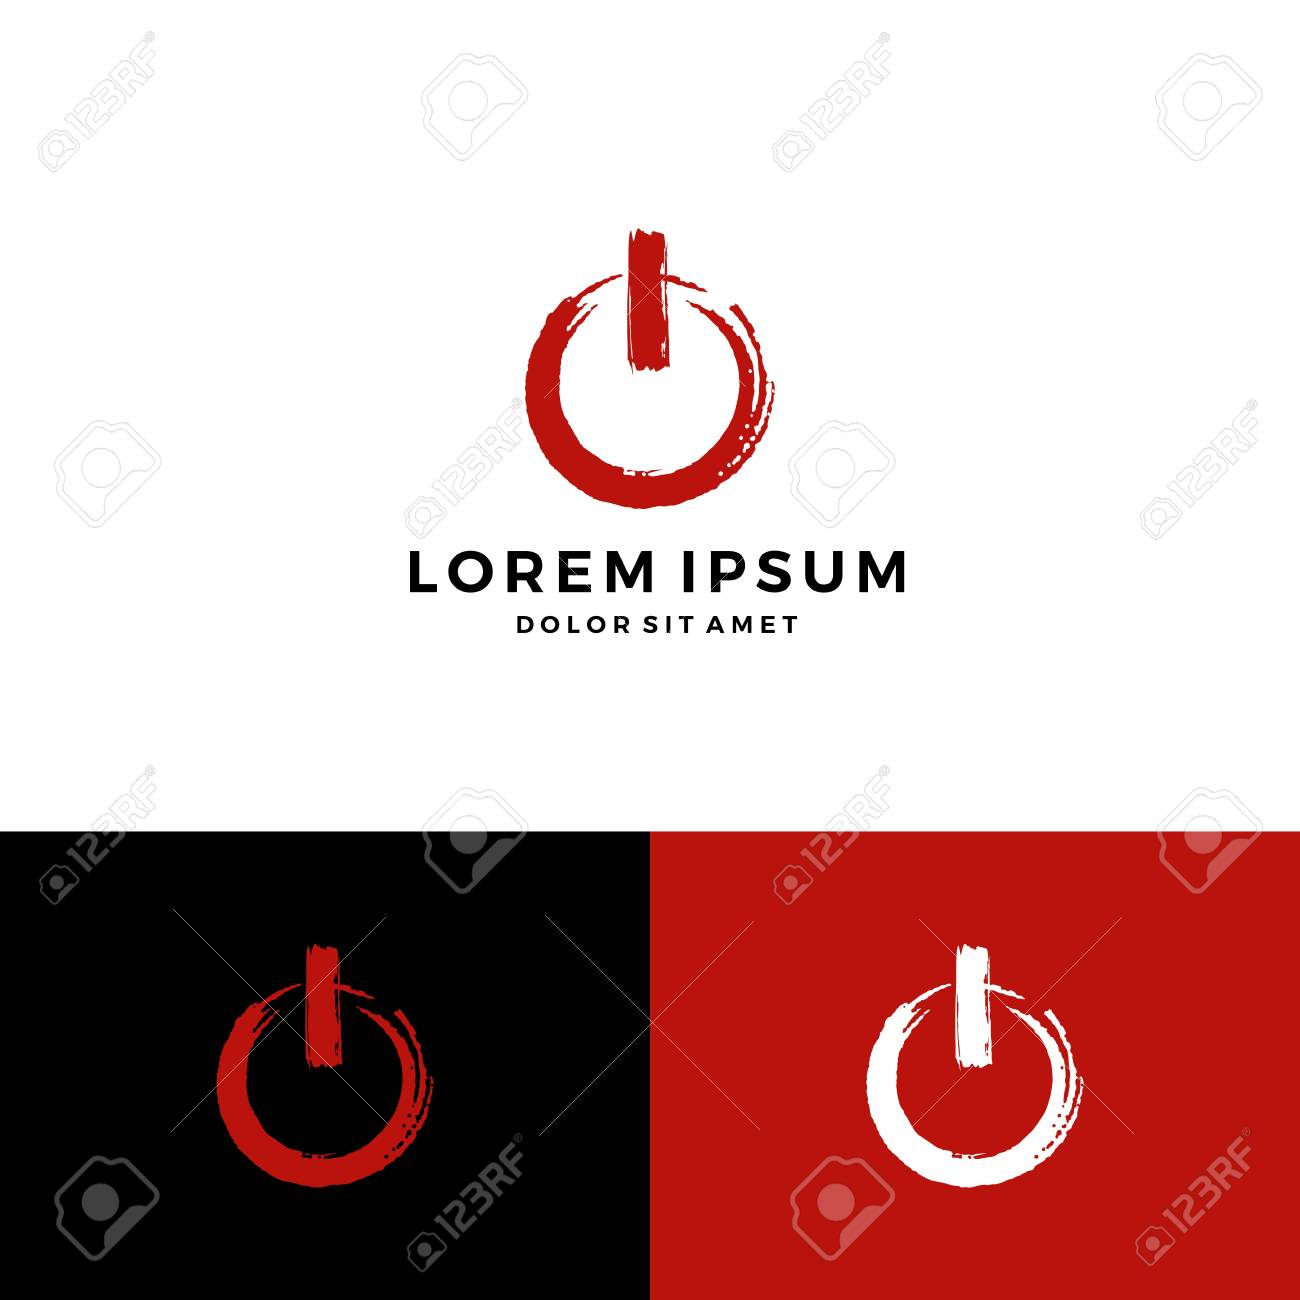 A Power Button Symbol Brush Stroke On Off Icon Download Royalty Free